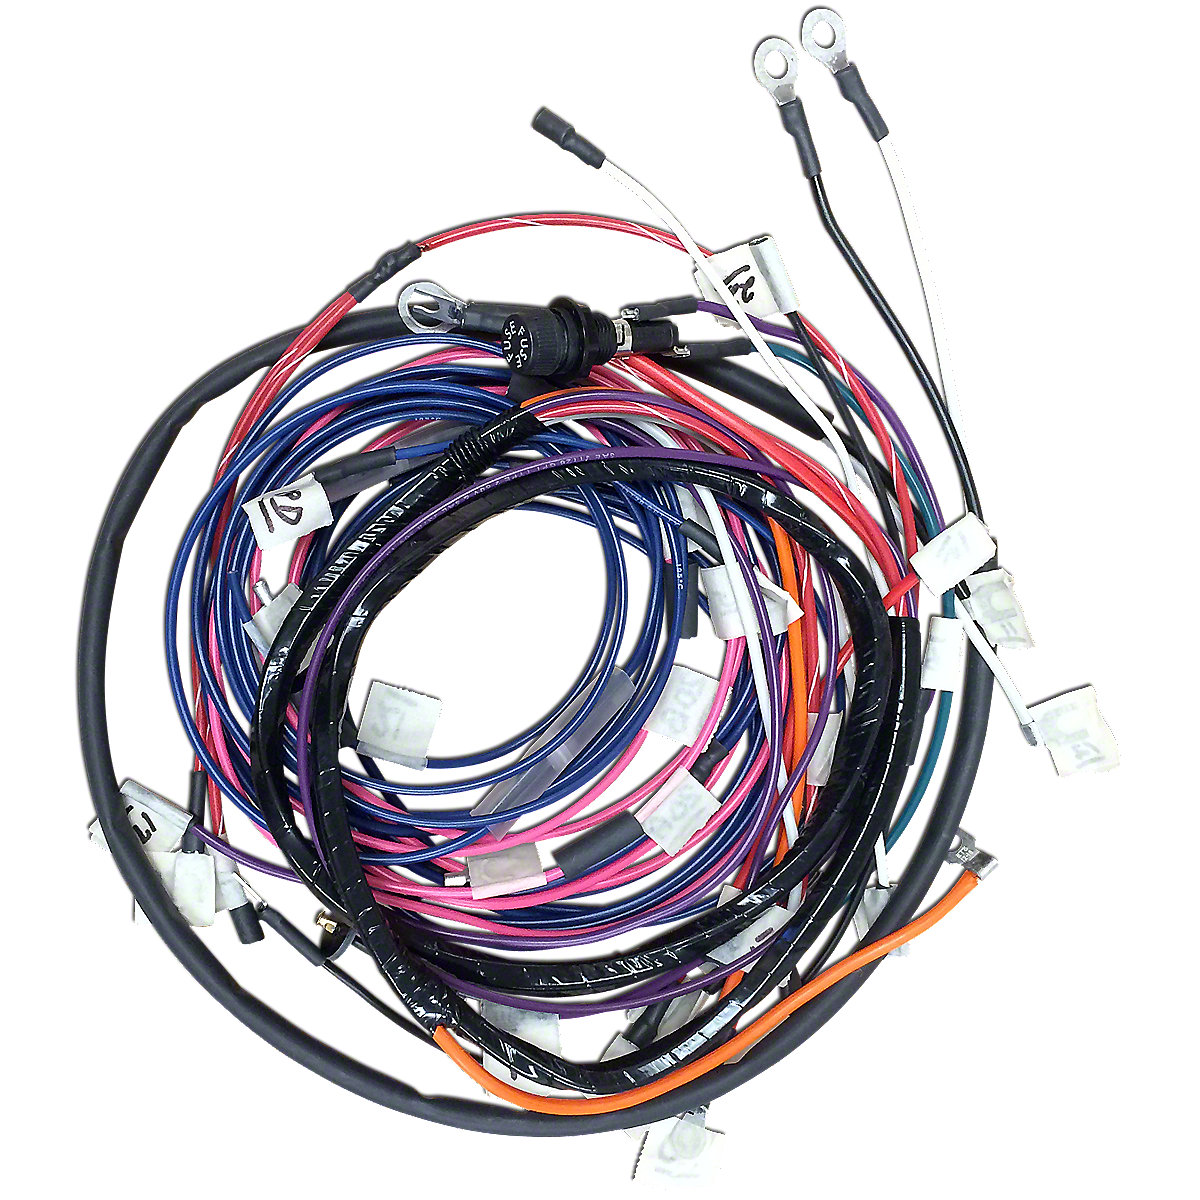 ua50515 complete wiring harness d17 series iv wiring harness show Wiring Harness Diagram